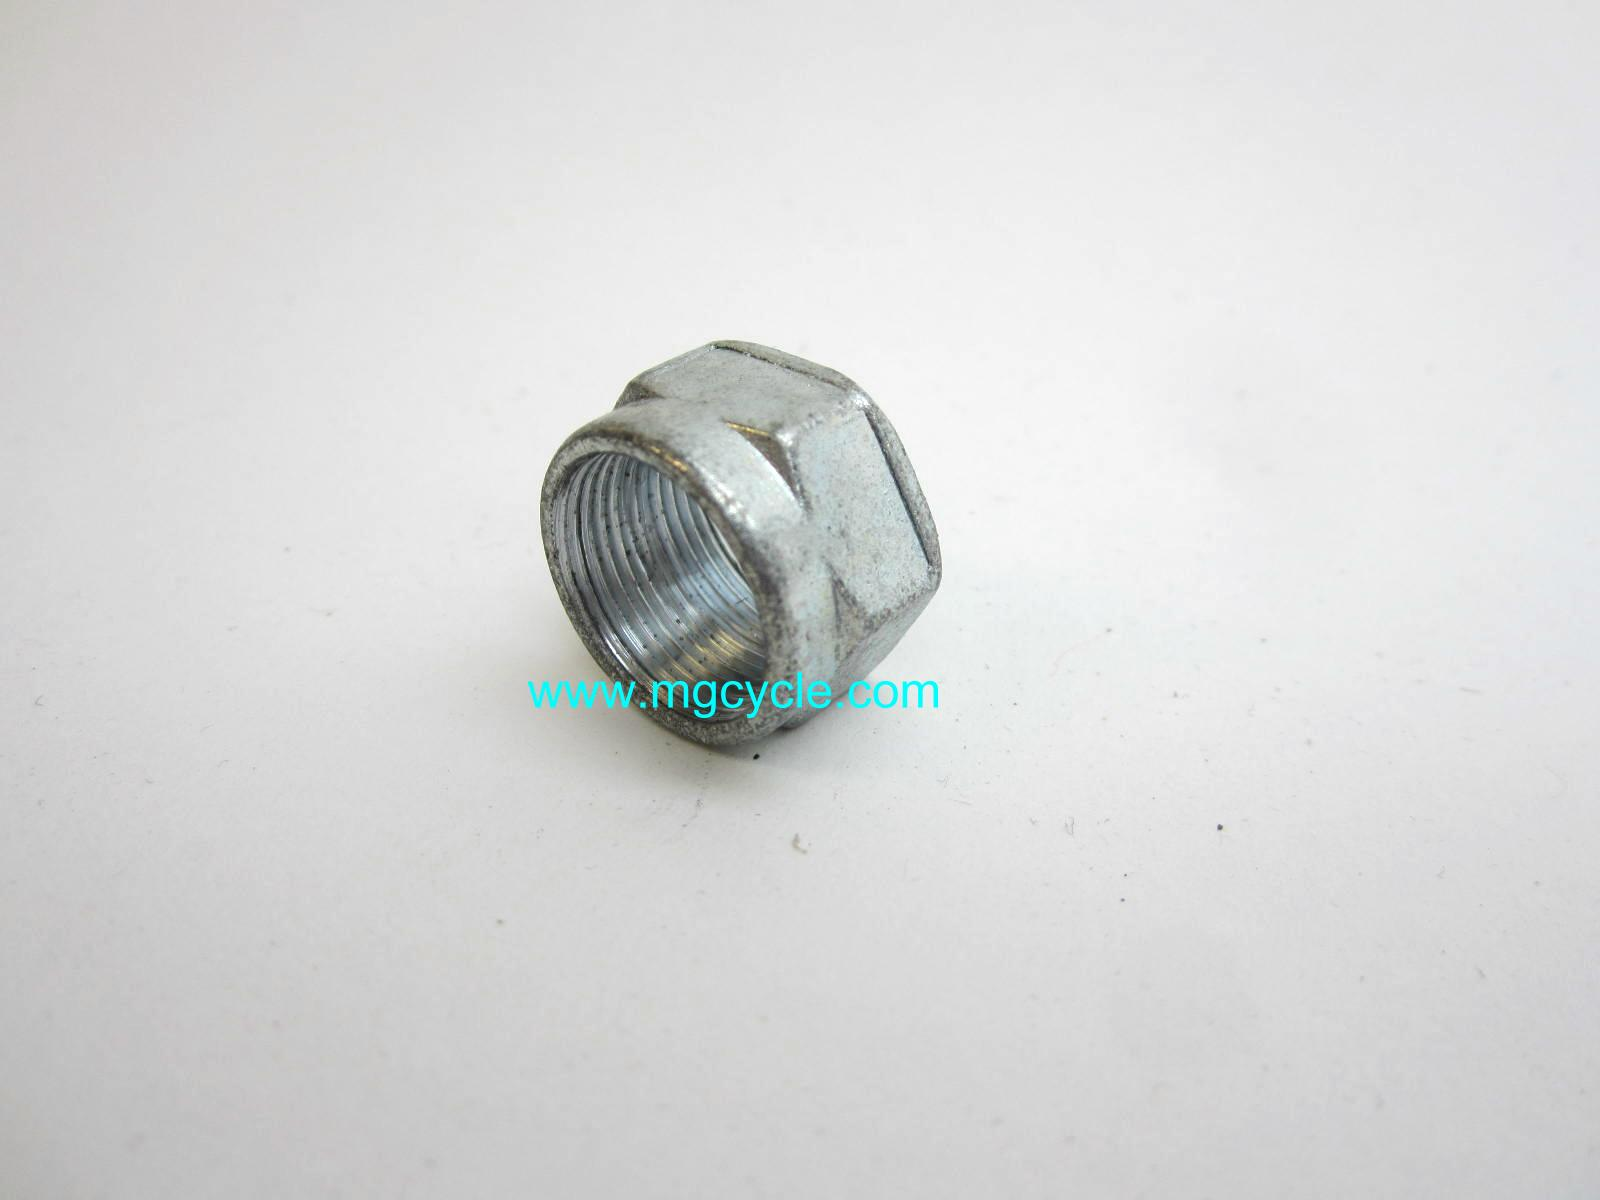 Petcock nut, M16 x 1.00 thread pitch, many Guzzi petcocks